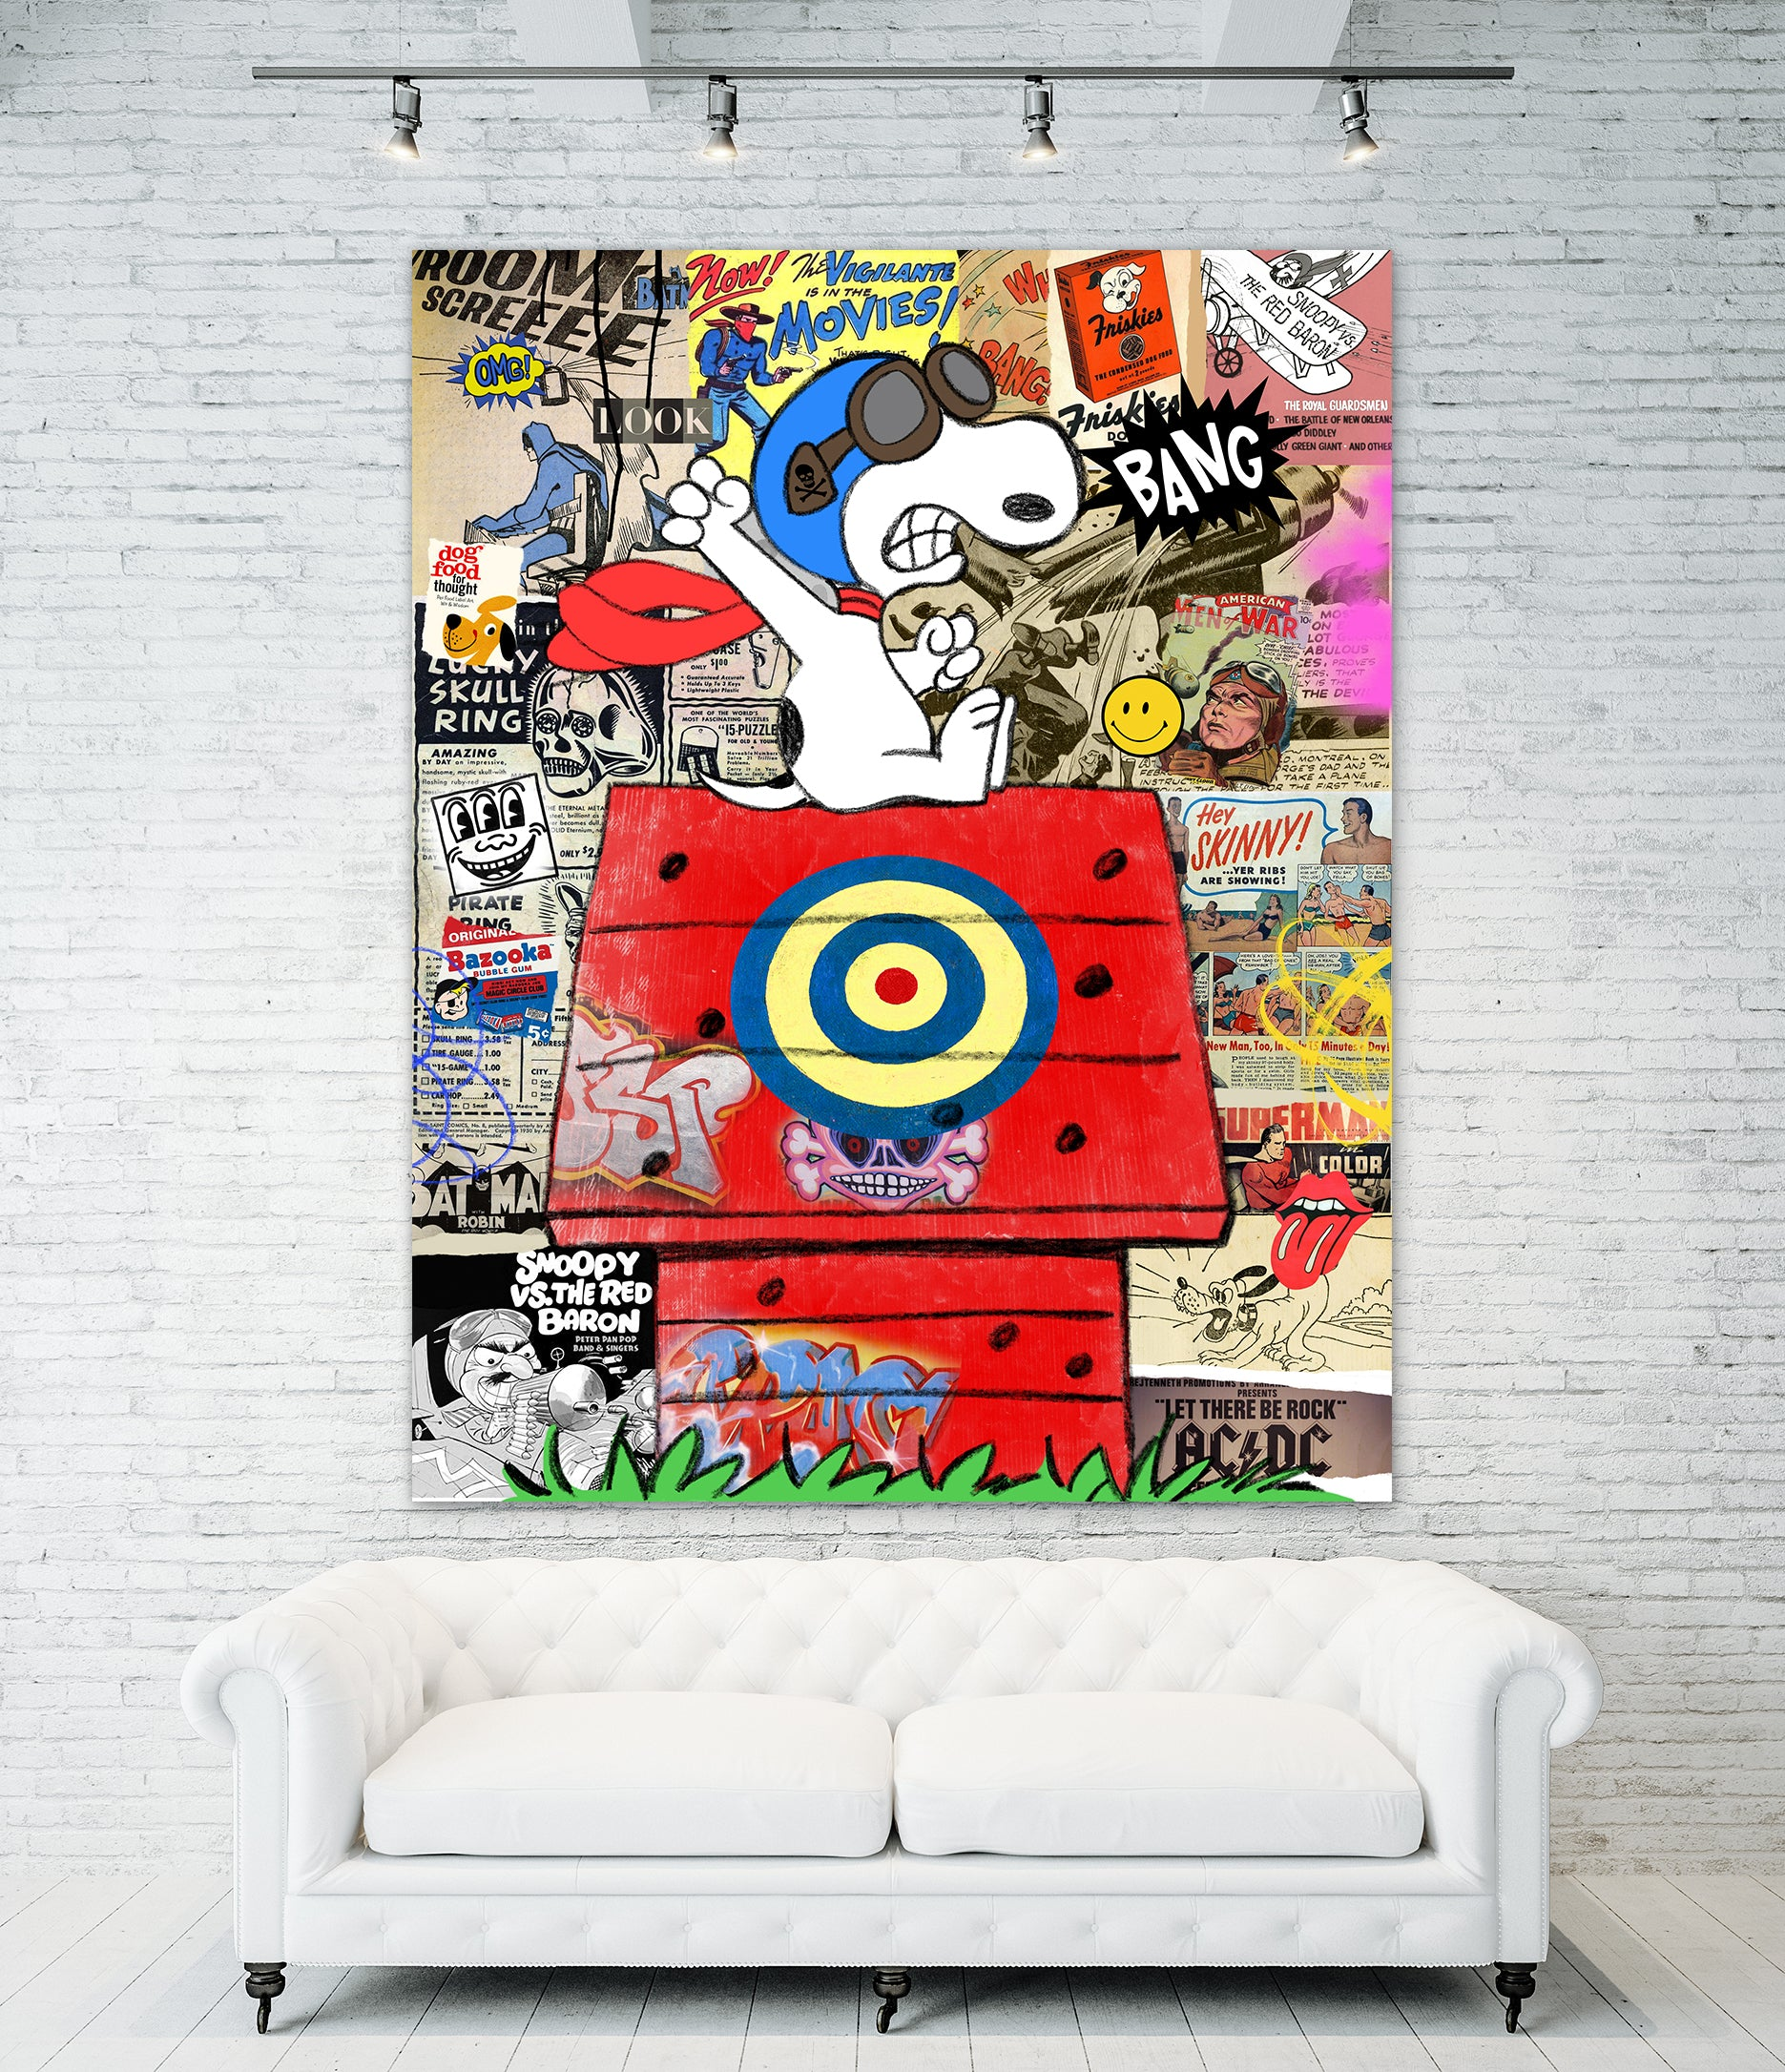 King of Pop Art Nelson De La Nuez Red Baron dog fight airplane peanuts snoopy